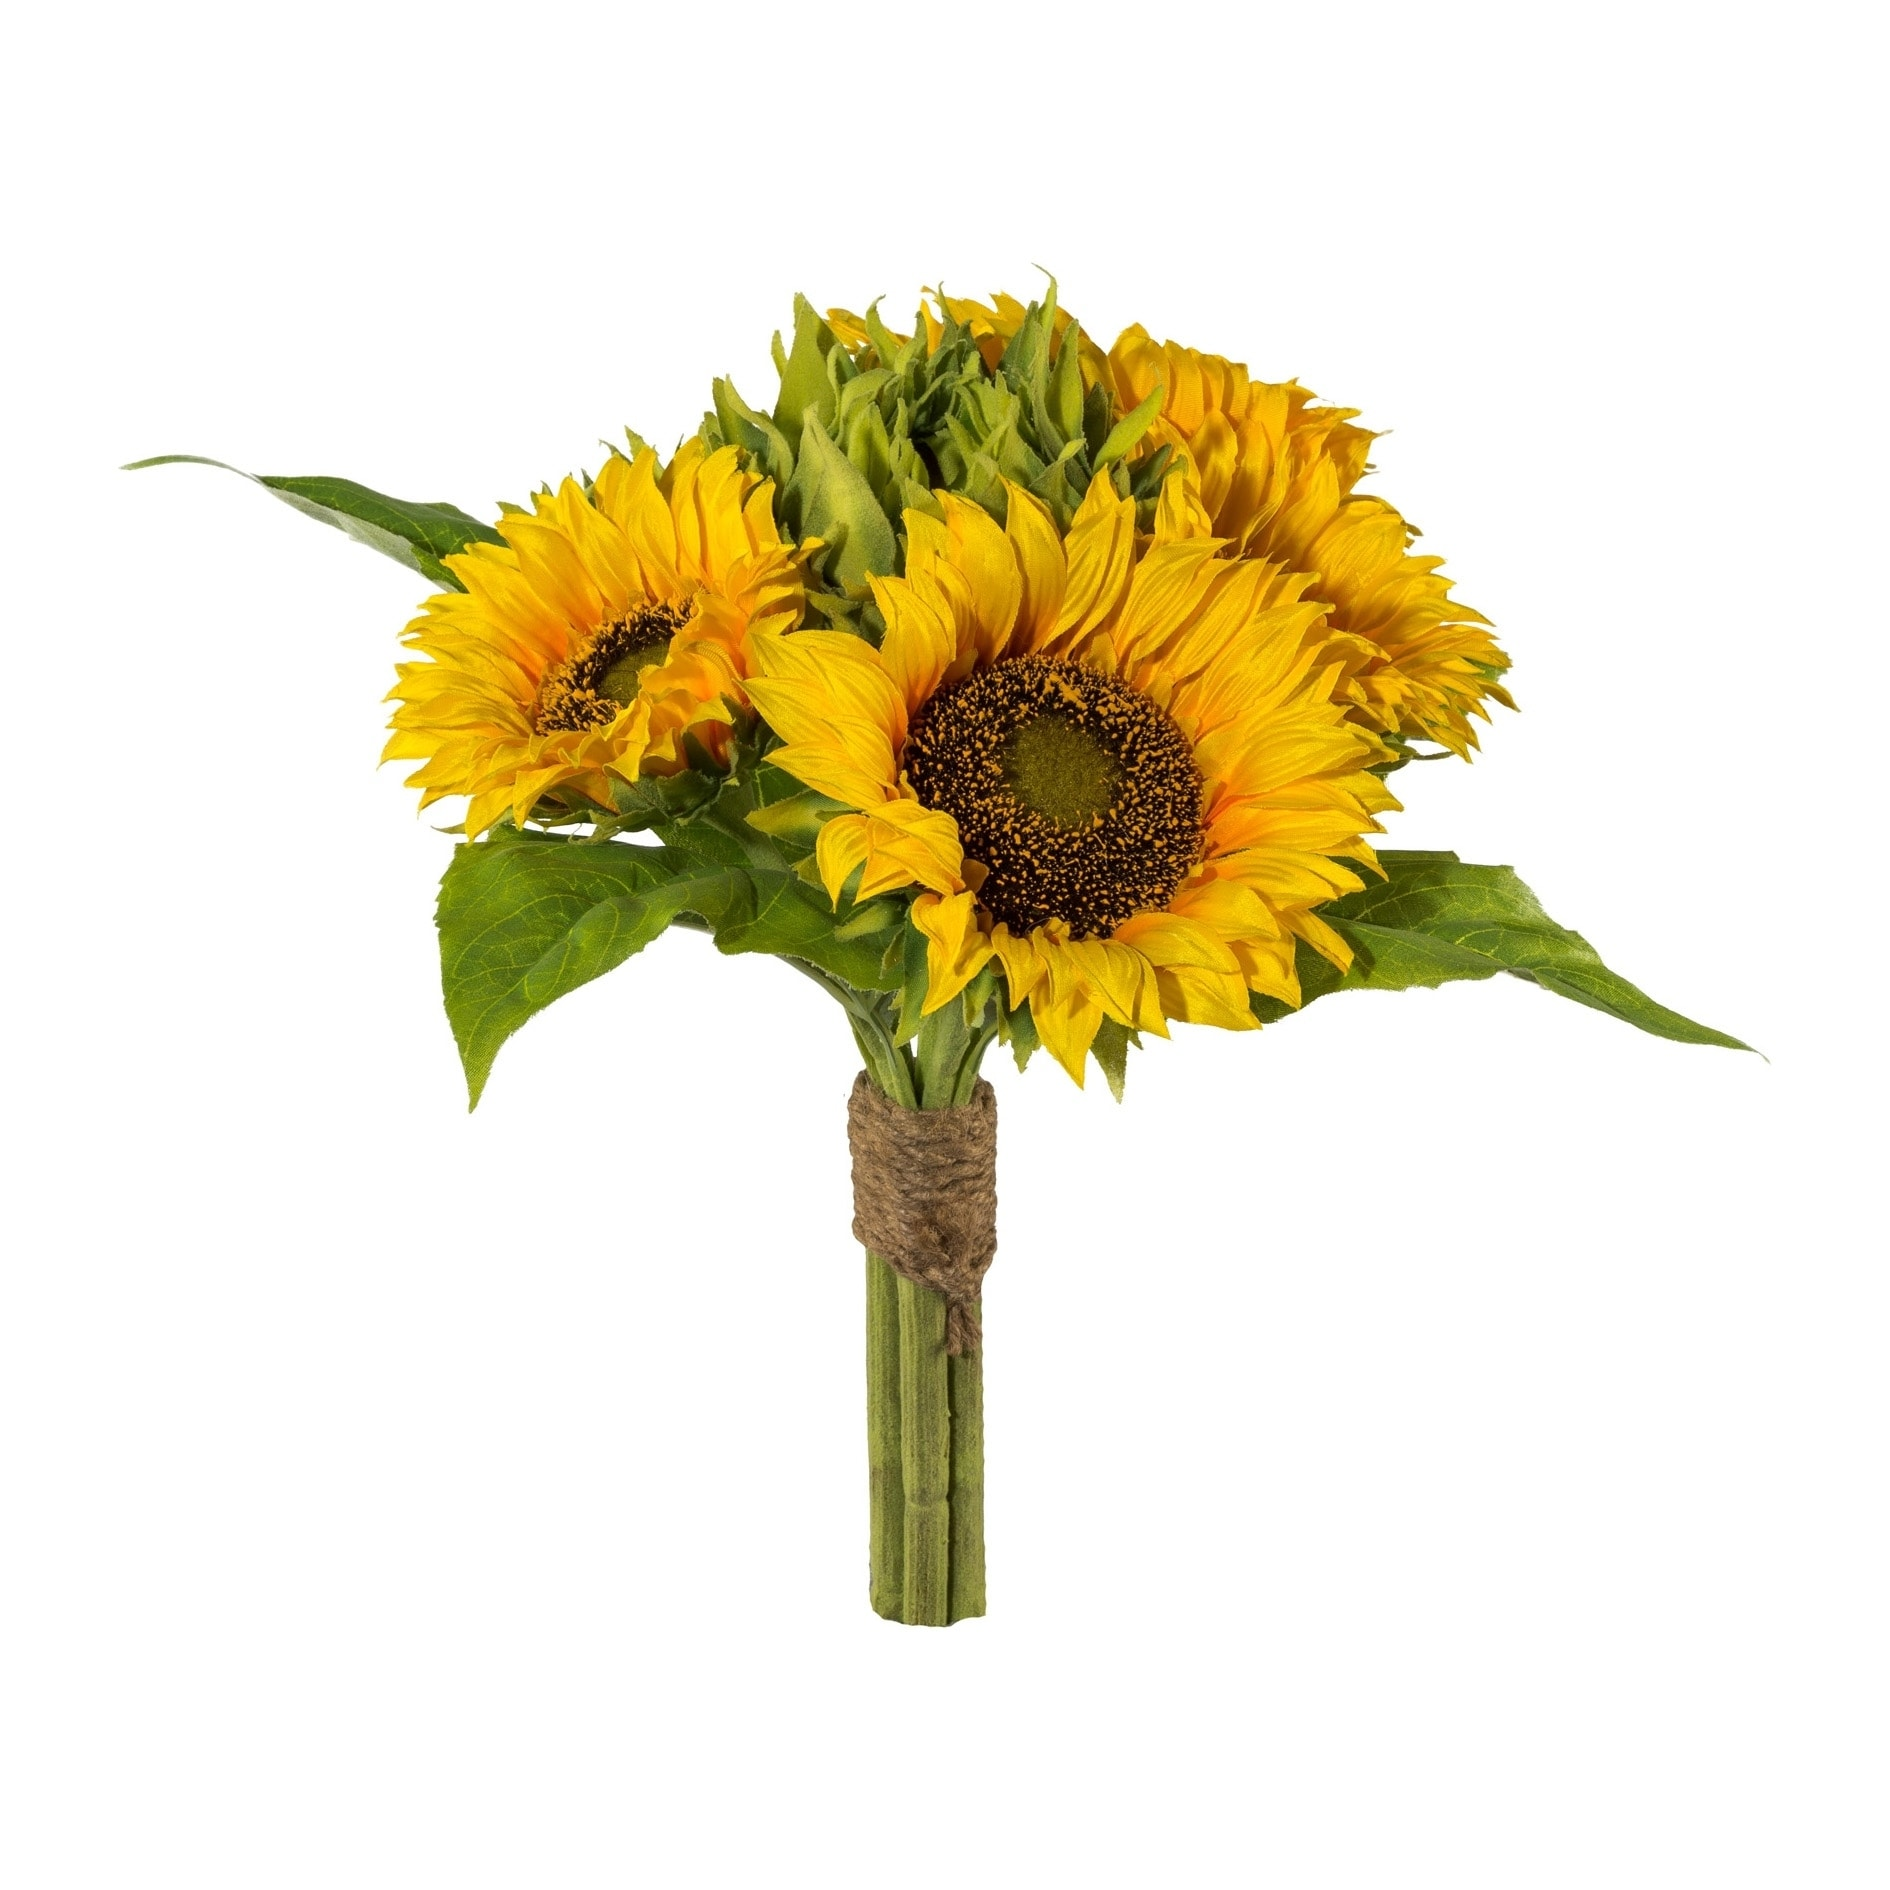 Artificial Fall Sunflower Bouquet 6 Large Flowers In 1 Bunch Overstock 25585349